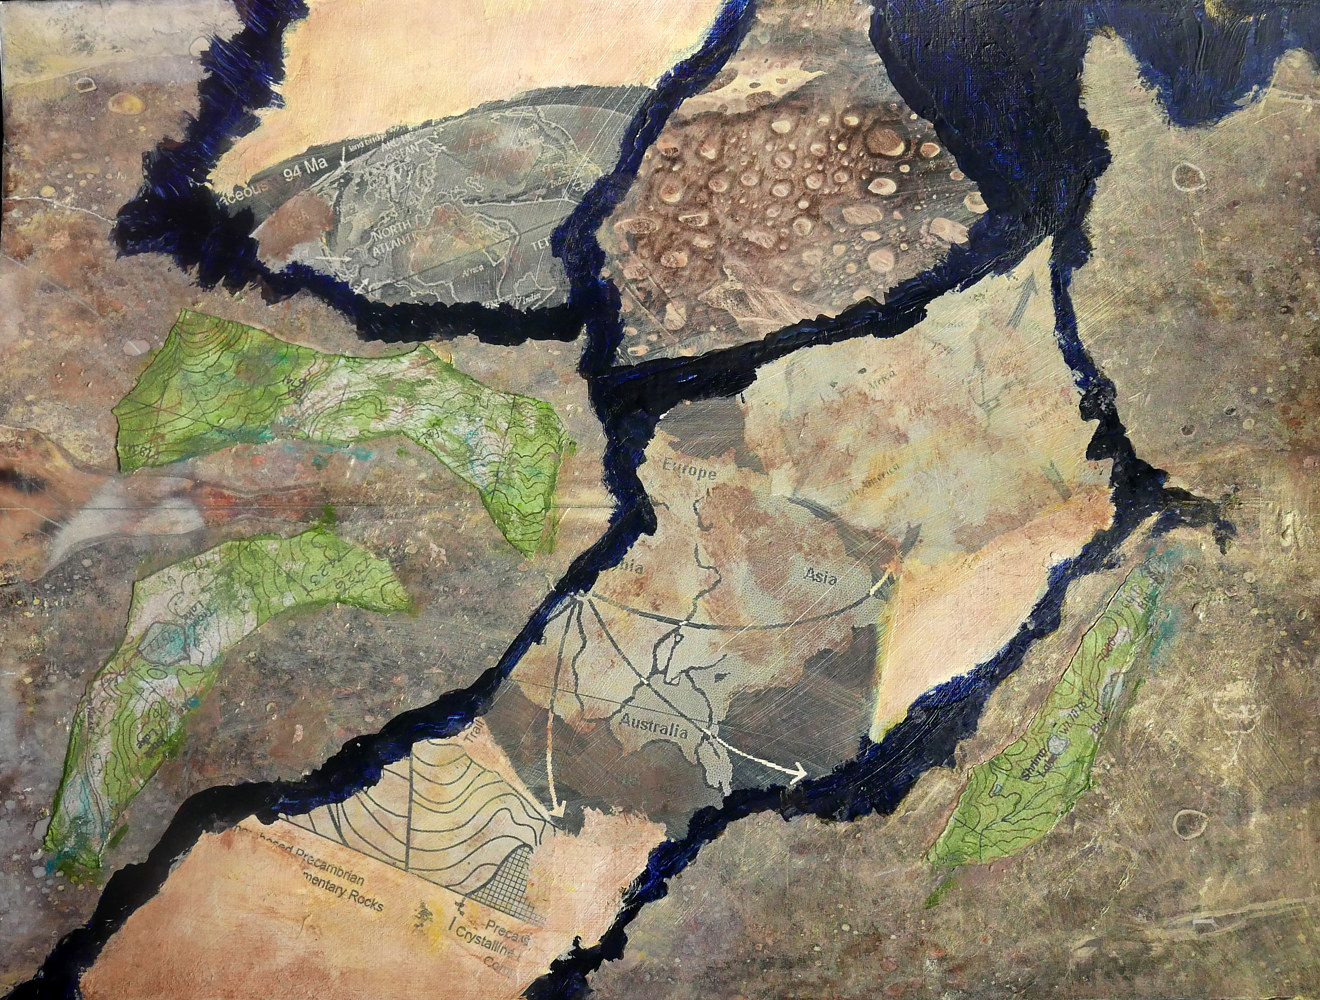 Mixed-media artwork Continents Collide by Pamela Pitt